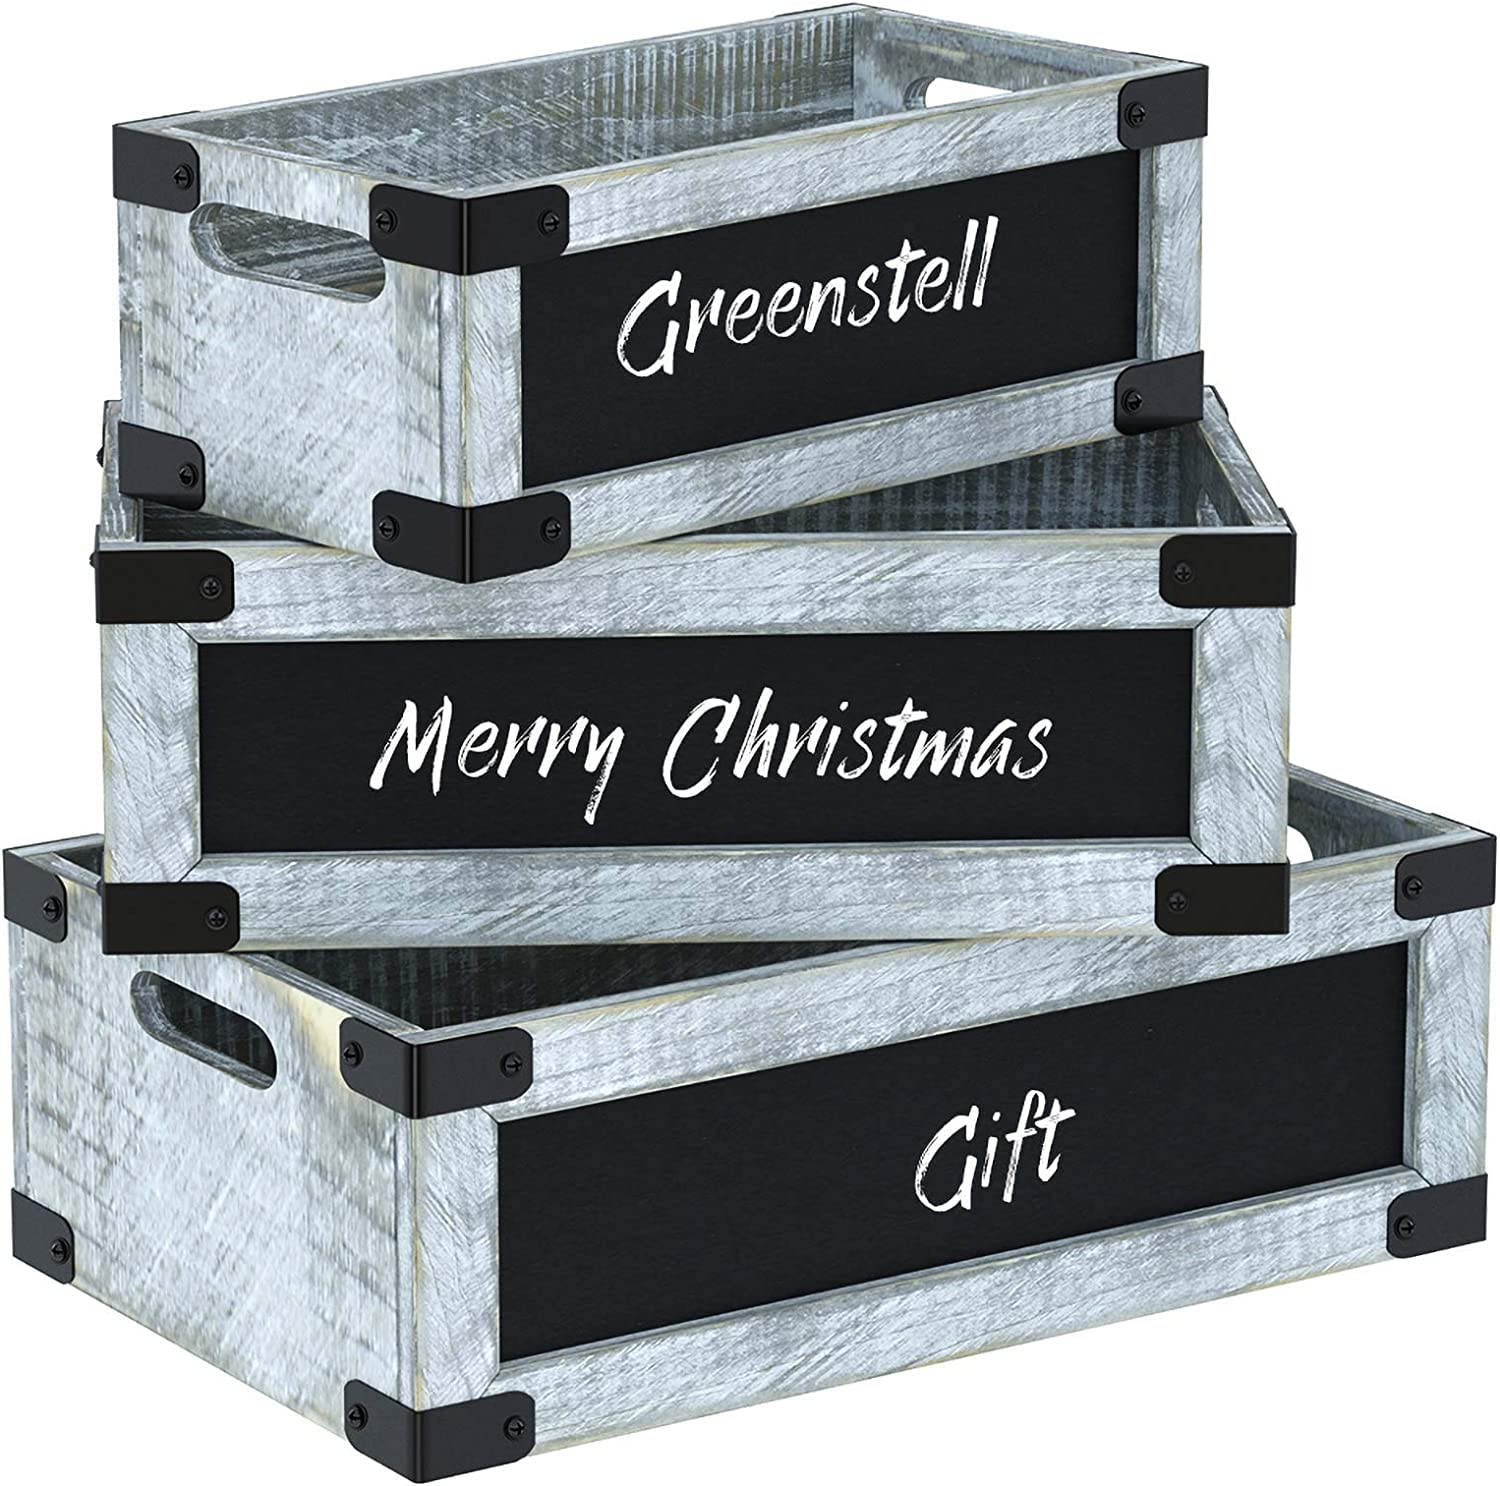 Greenstell Rustic Grey Wooden Crate with Chalkboard and Cutout Handle, Decorative Farmhouse Display Wood Storage Crate Box for Storing Fruit, Milk, Beer, Egg Set of 3